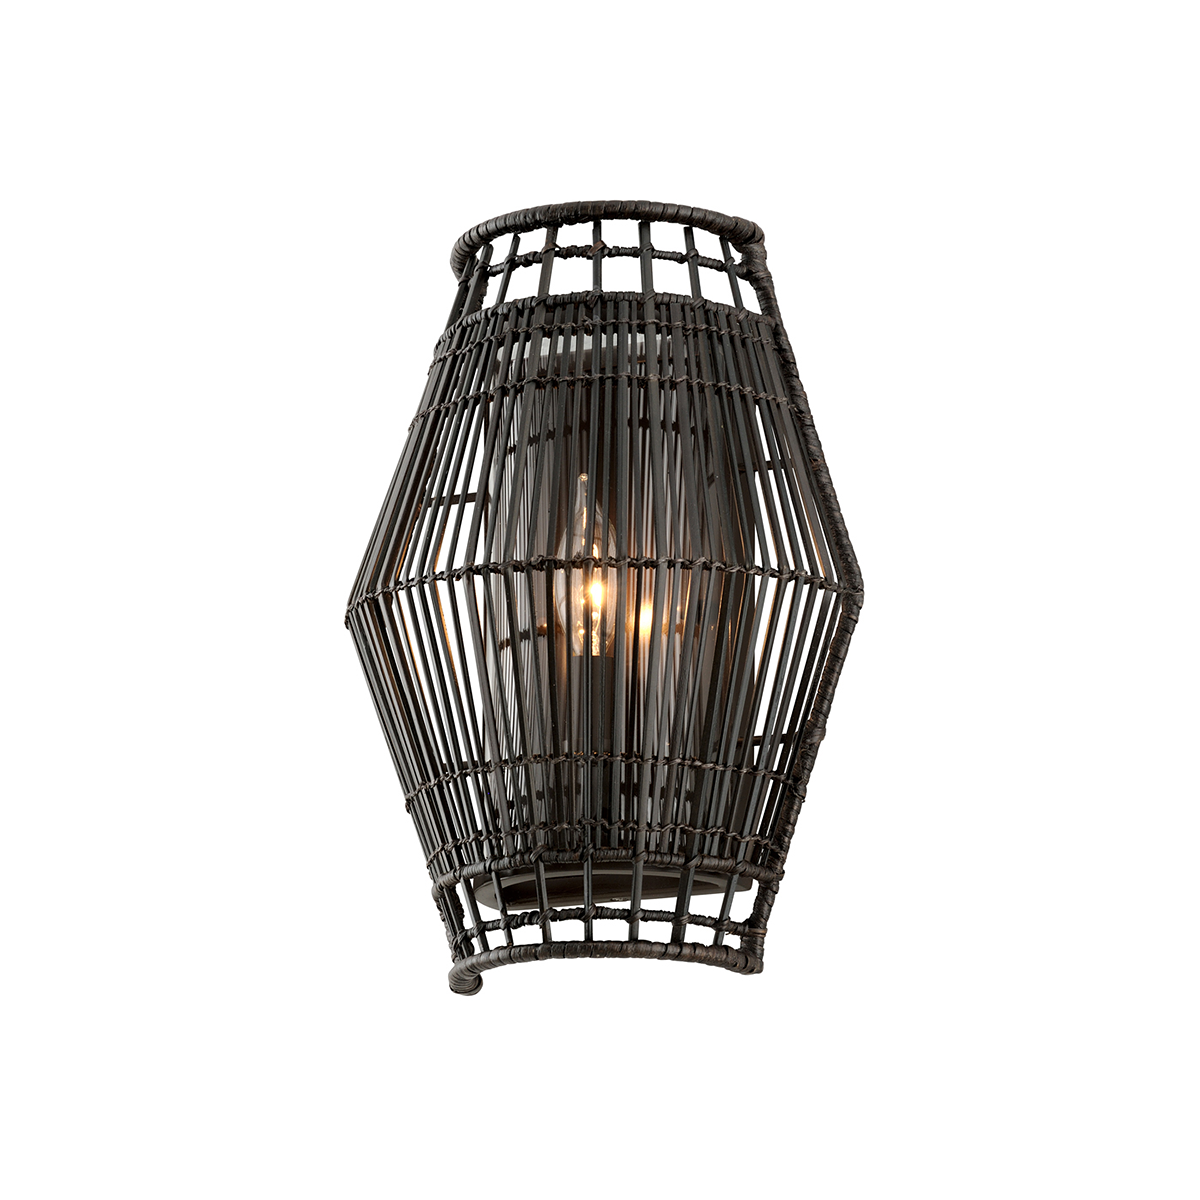 Hunters Point 1 Light Wall Sconce